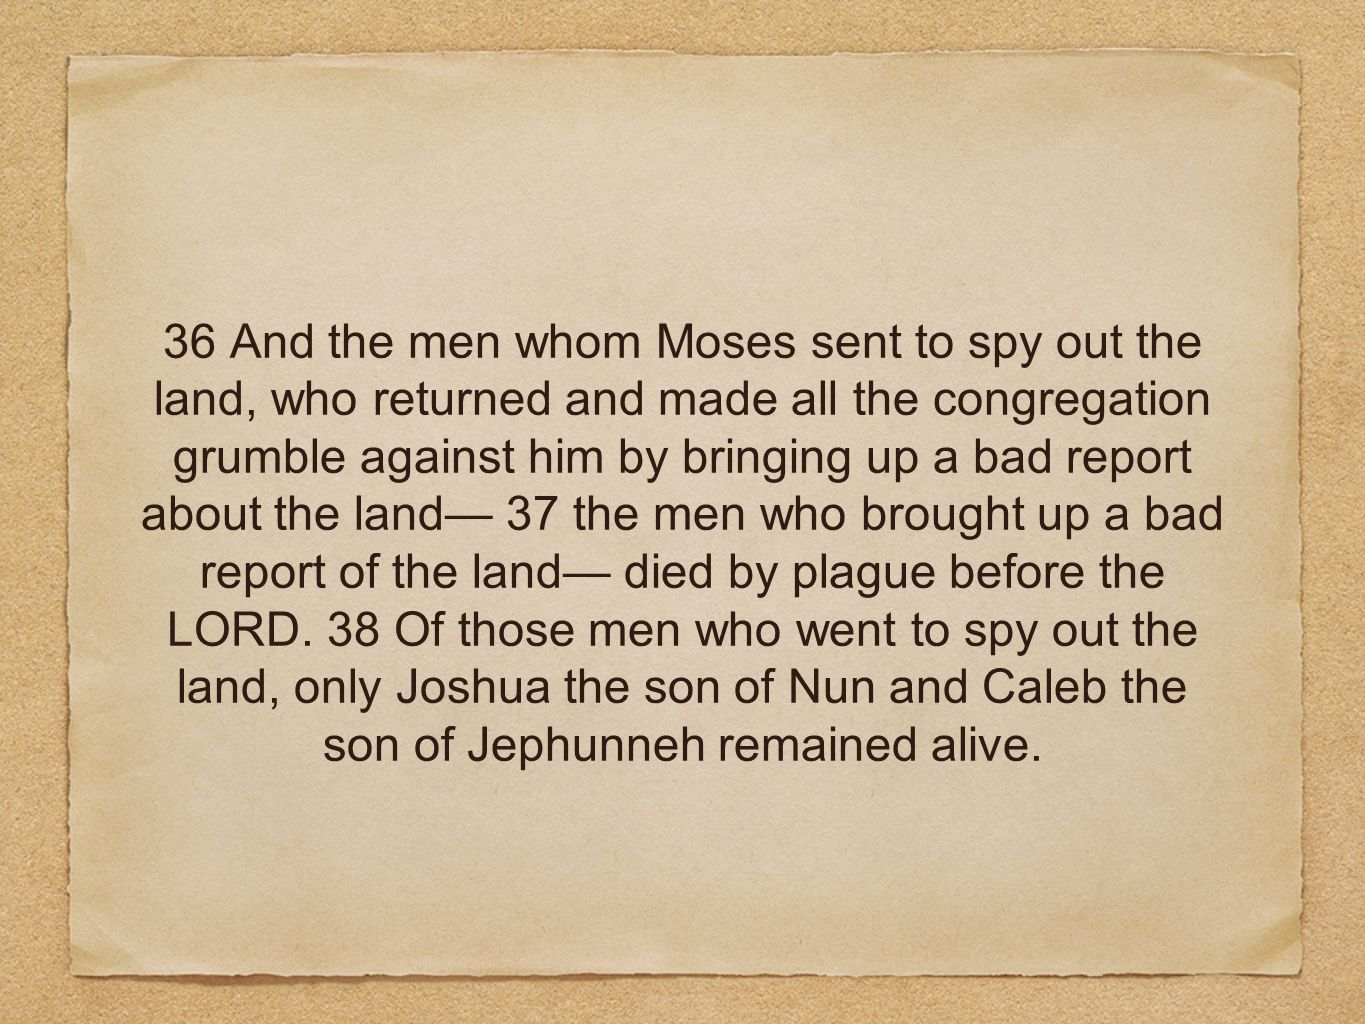 36 And the men whom Moses sent to spy out the land, who returned and made all the congregation grumble against him by bringing up a bad report about the land— 37 the men who brought up a bad report of the land— died by plague before the LORD.